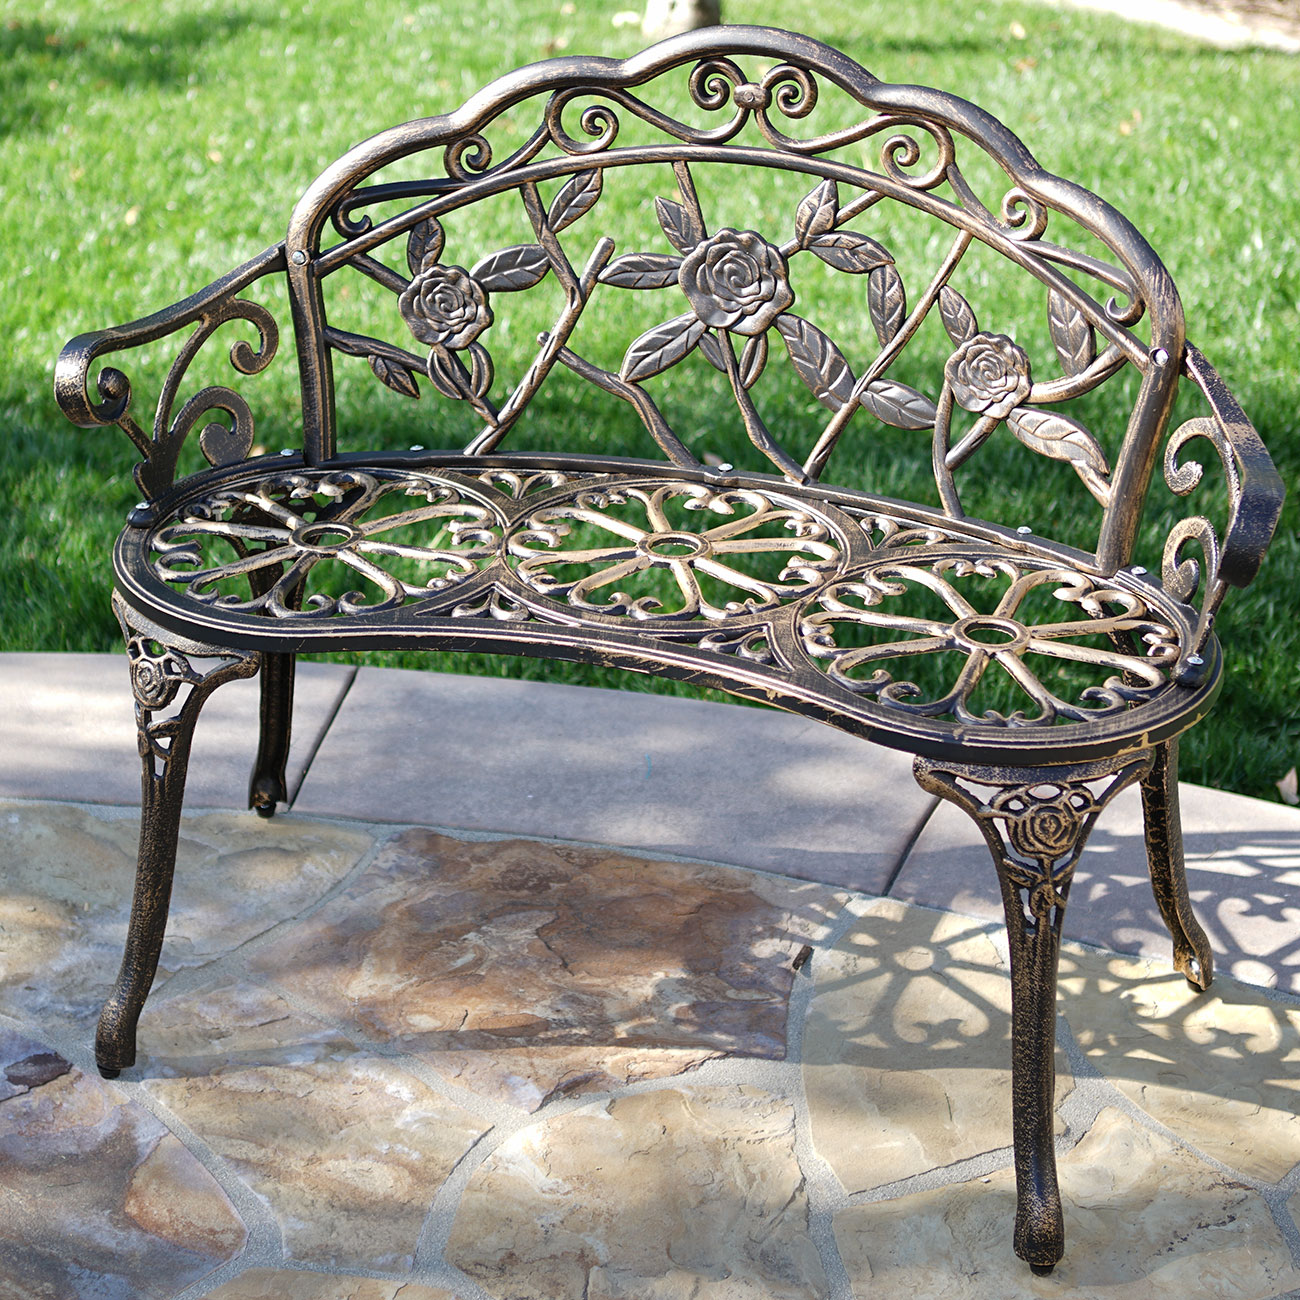 New 39 antique design style patio porch garden bench cast aluminum outdoor home ebay Aluminum benches